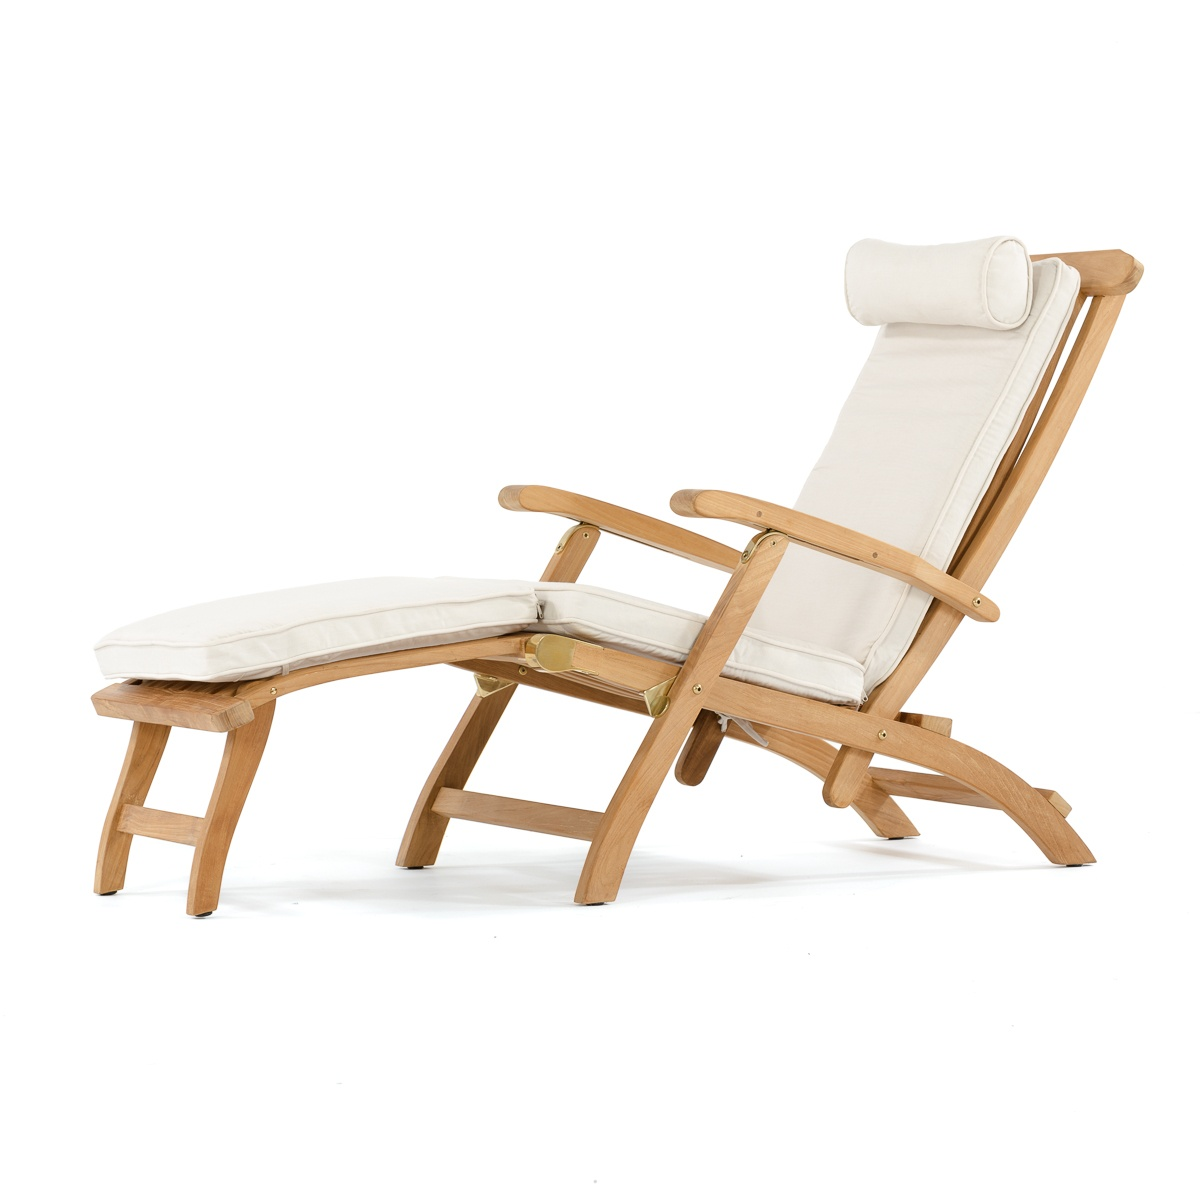 Sunbrella Steamer Cushion Westminster Teak Outdoor Furniture